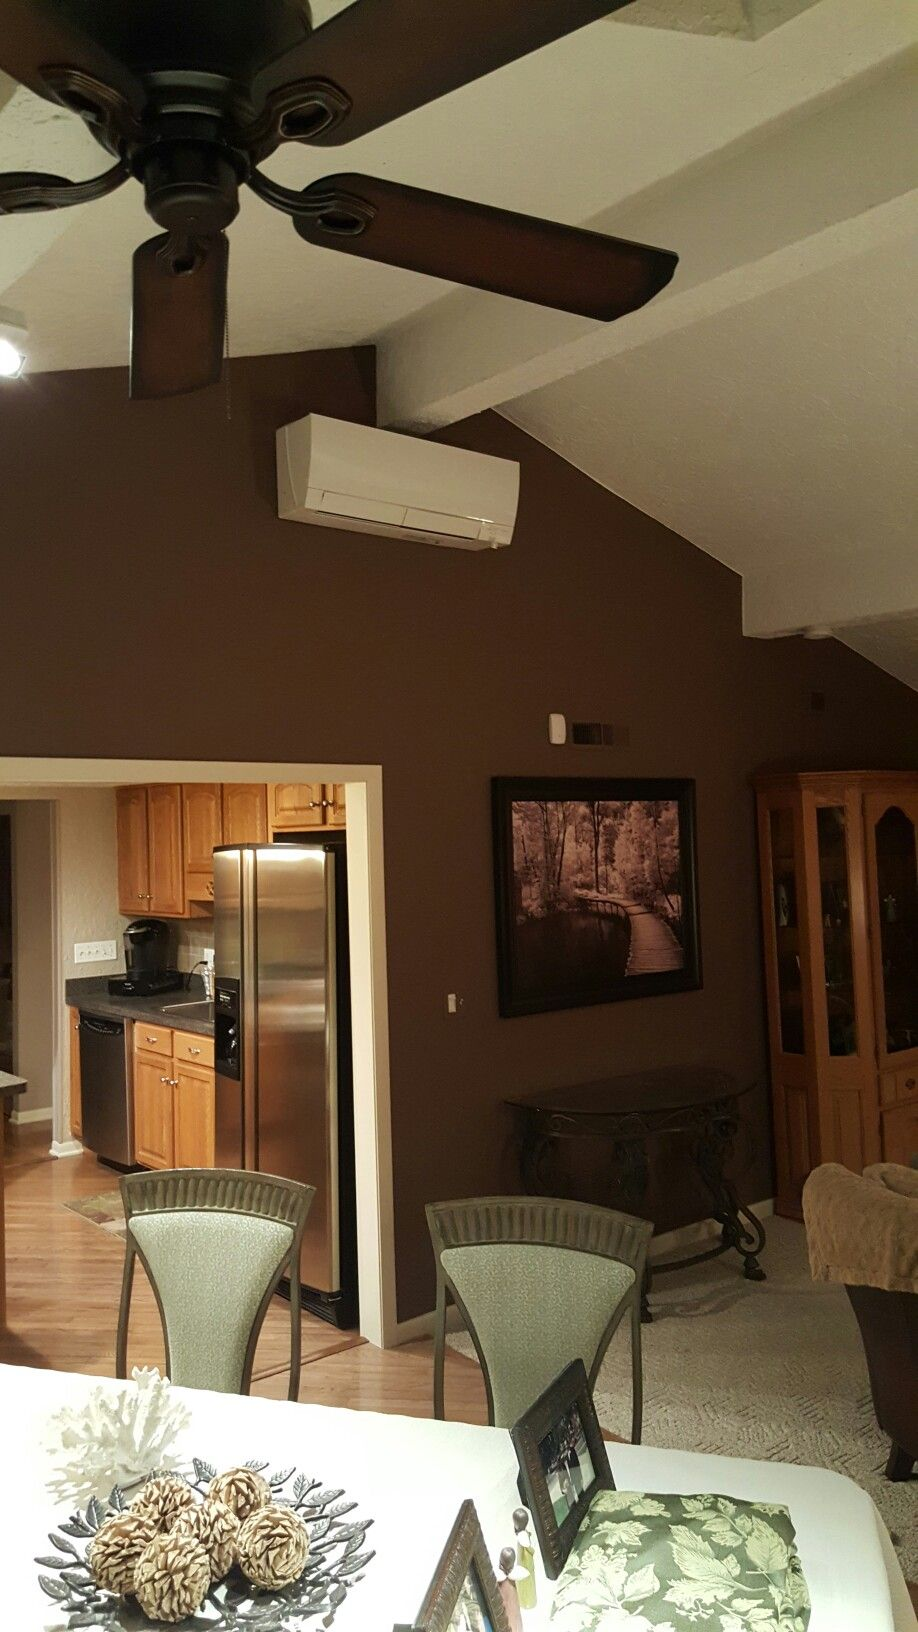 Mitsubishi Msz Fh18na2 Indoor Portion Of A Hyper Heating Low Ambient Heat Pump System This Affordable Interiors Heating And Air Conditioning Heat Pump System